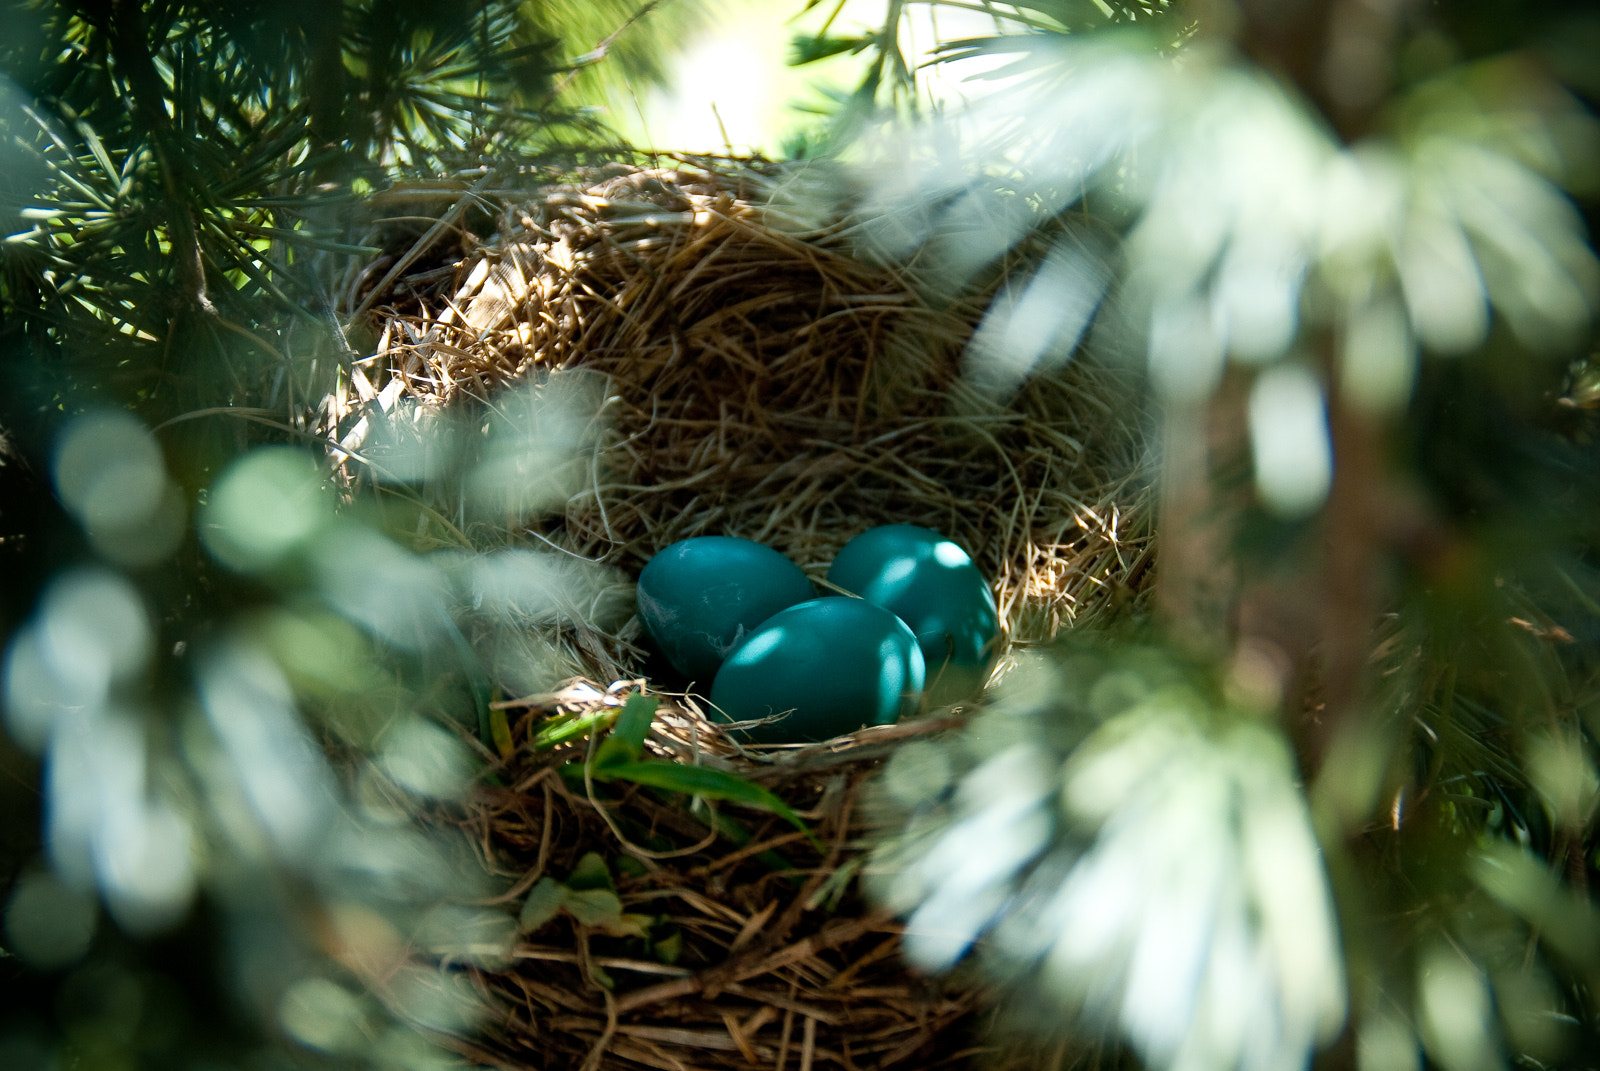 Photograph Robin's Nest by Jason Cox on 500px